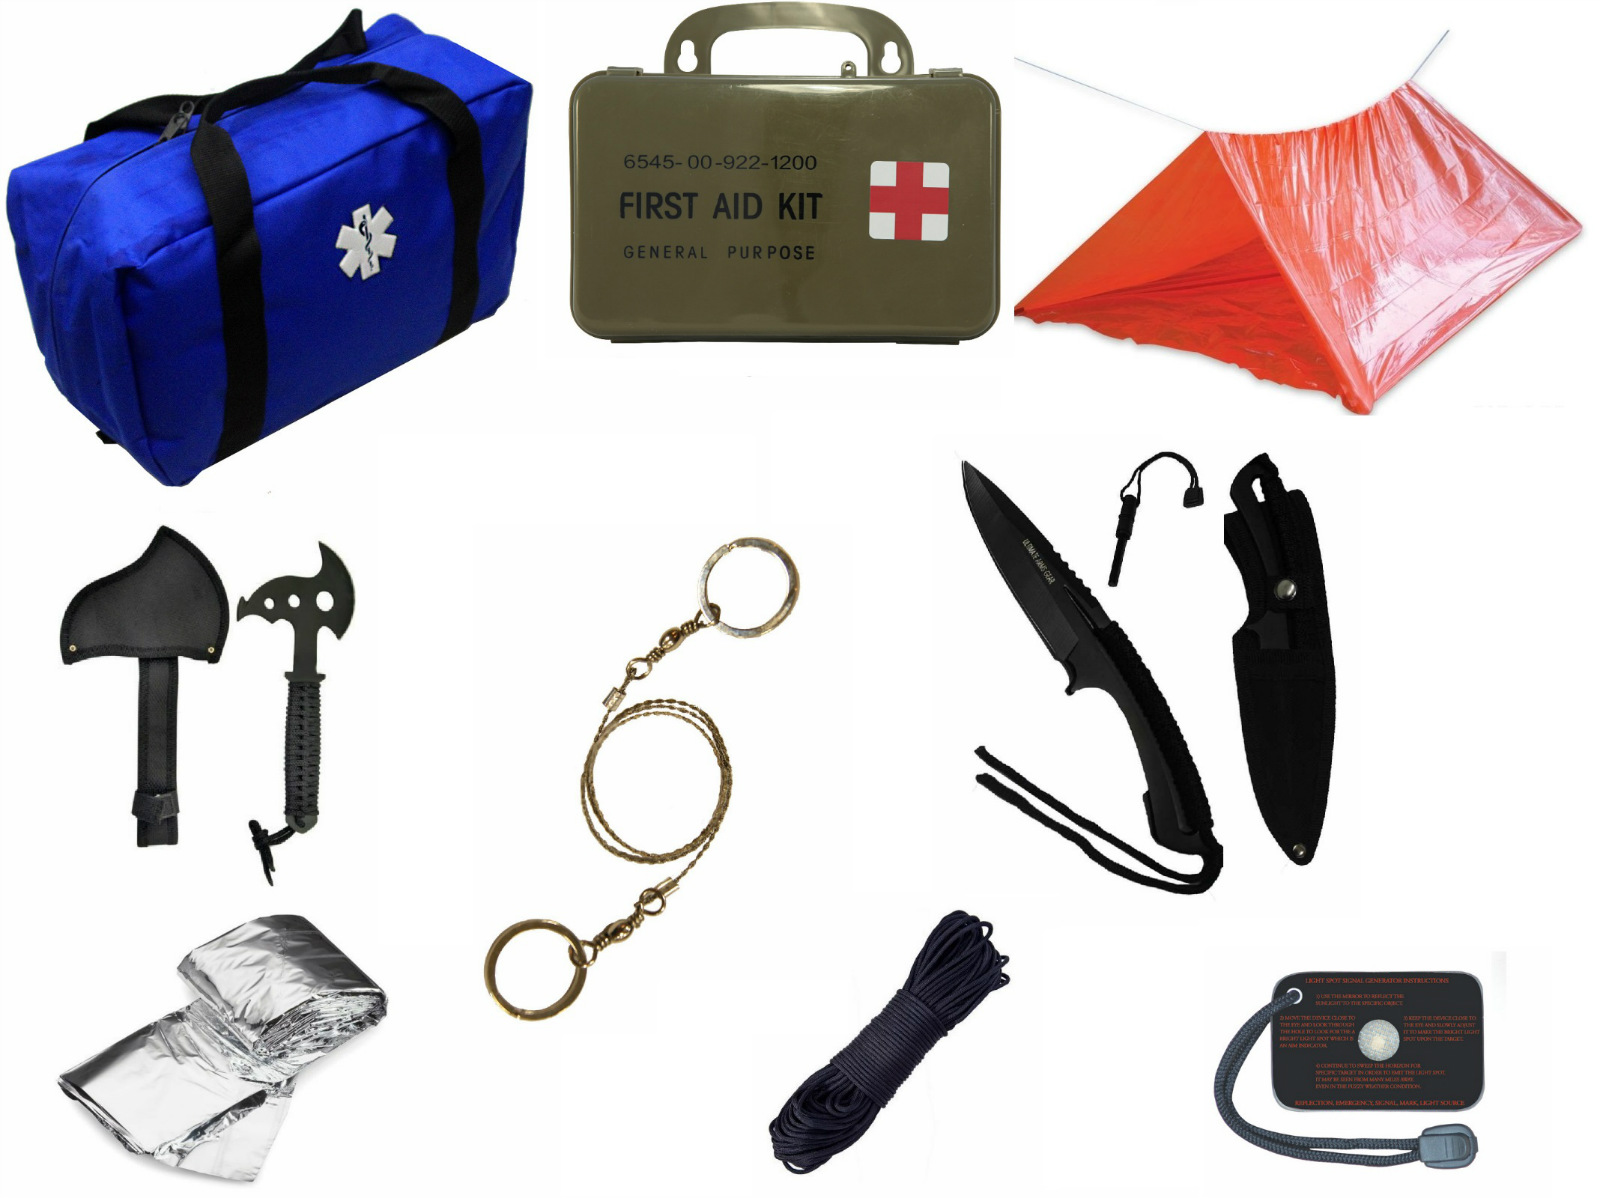 Ultimate Arms Gear Blue Emergency Survival Rescue Bag Kit; Signal Mirror, Polarshield Blanket, Knife Fire Starter, Wire... by